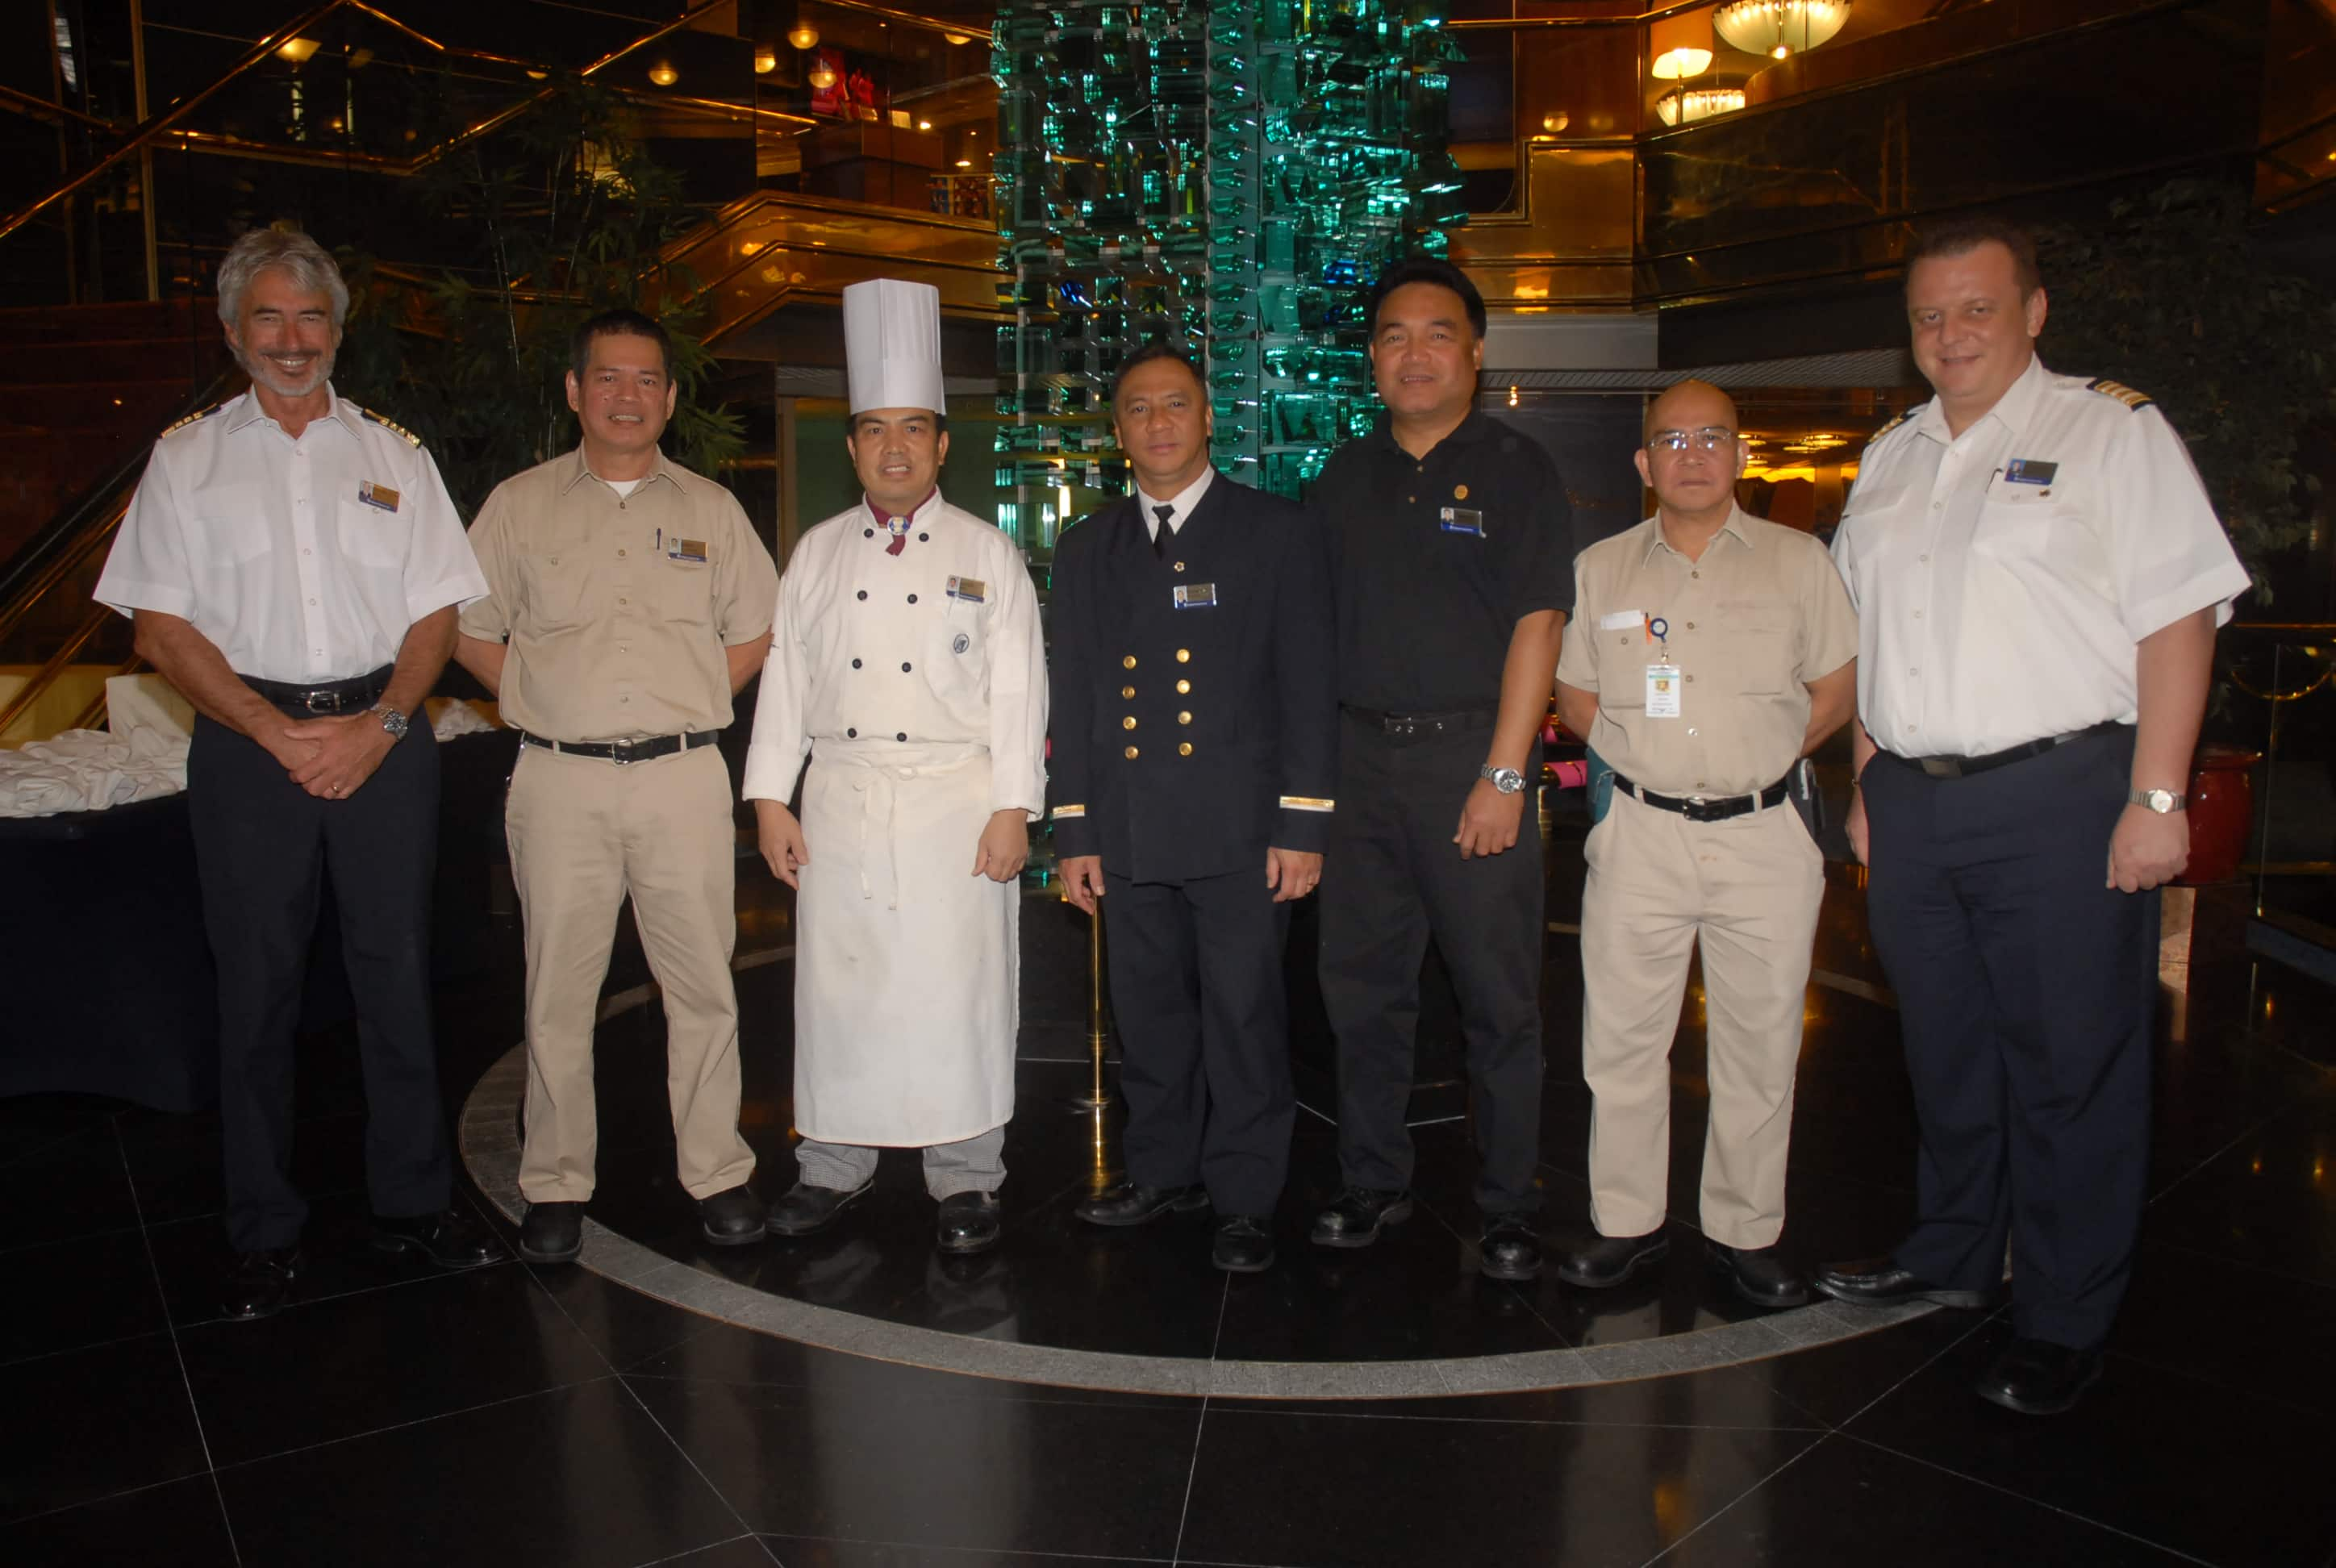 Maasdam Honors Exemplary Service Holland America Blog - Dining room manager